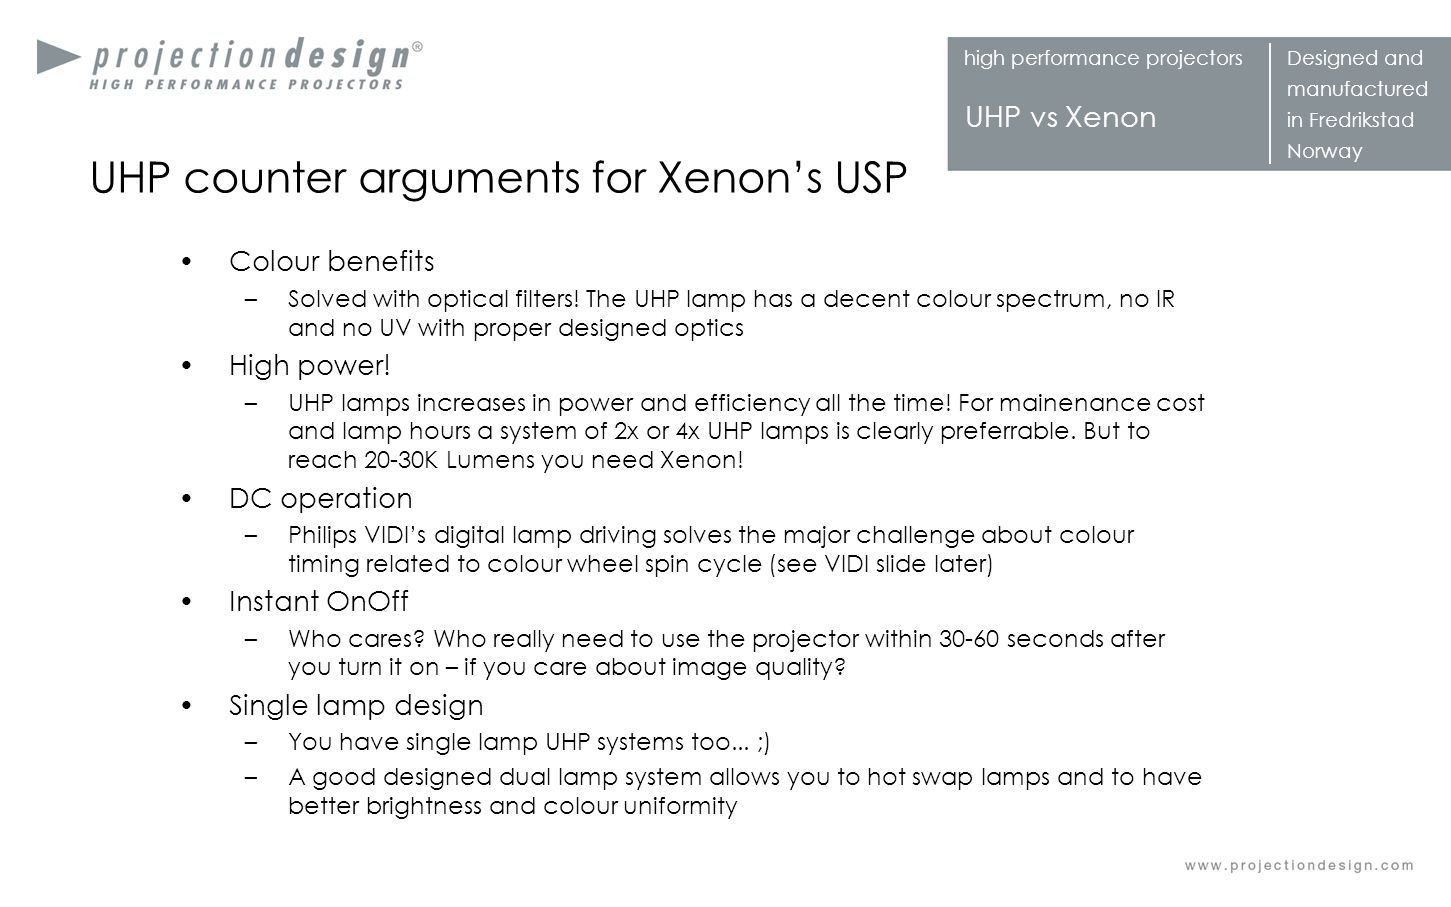 UHP counter arguments for Xenon's USP